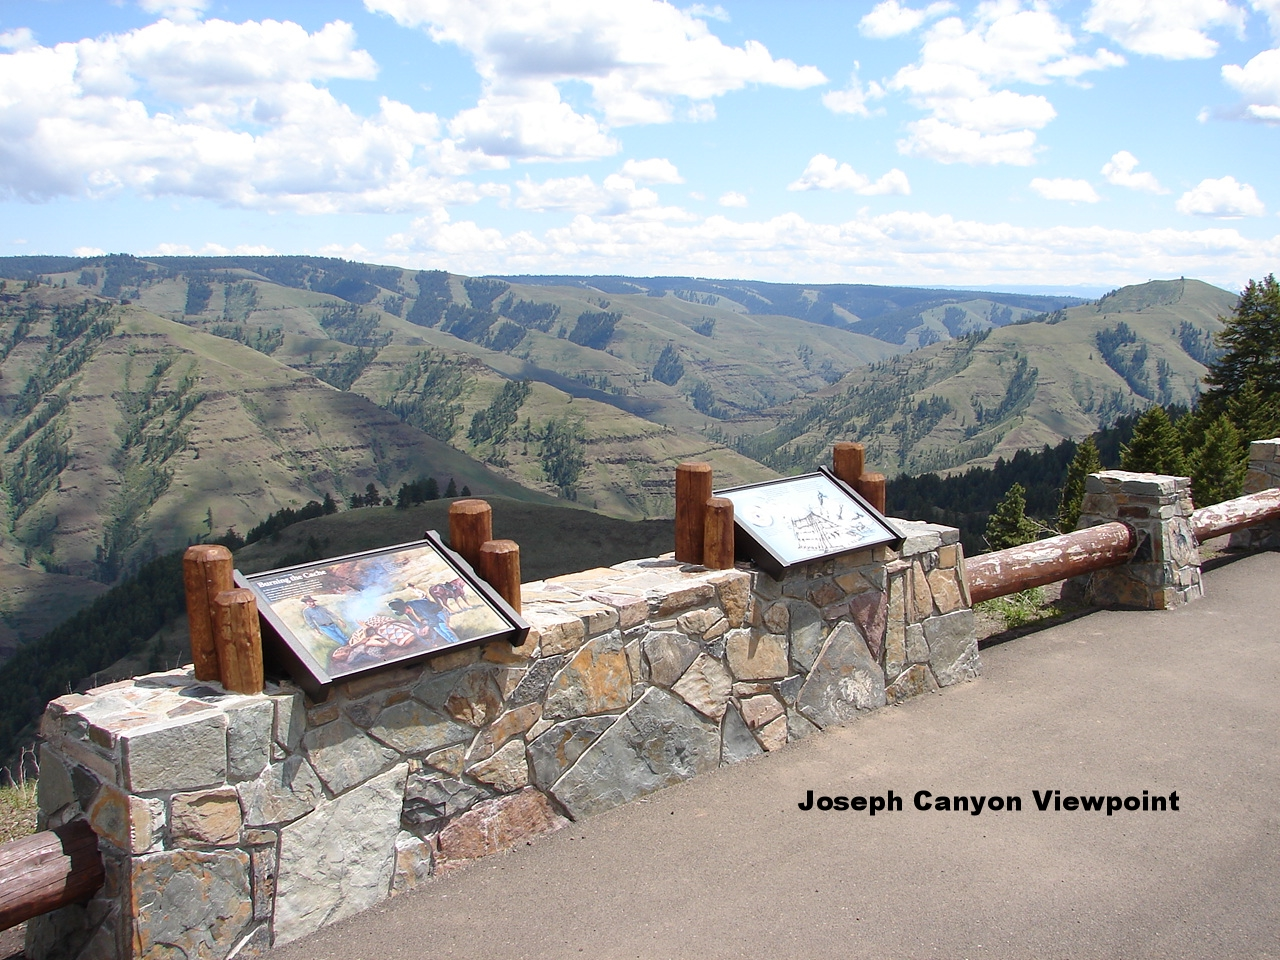 Joseph Canyon Viewpoint